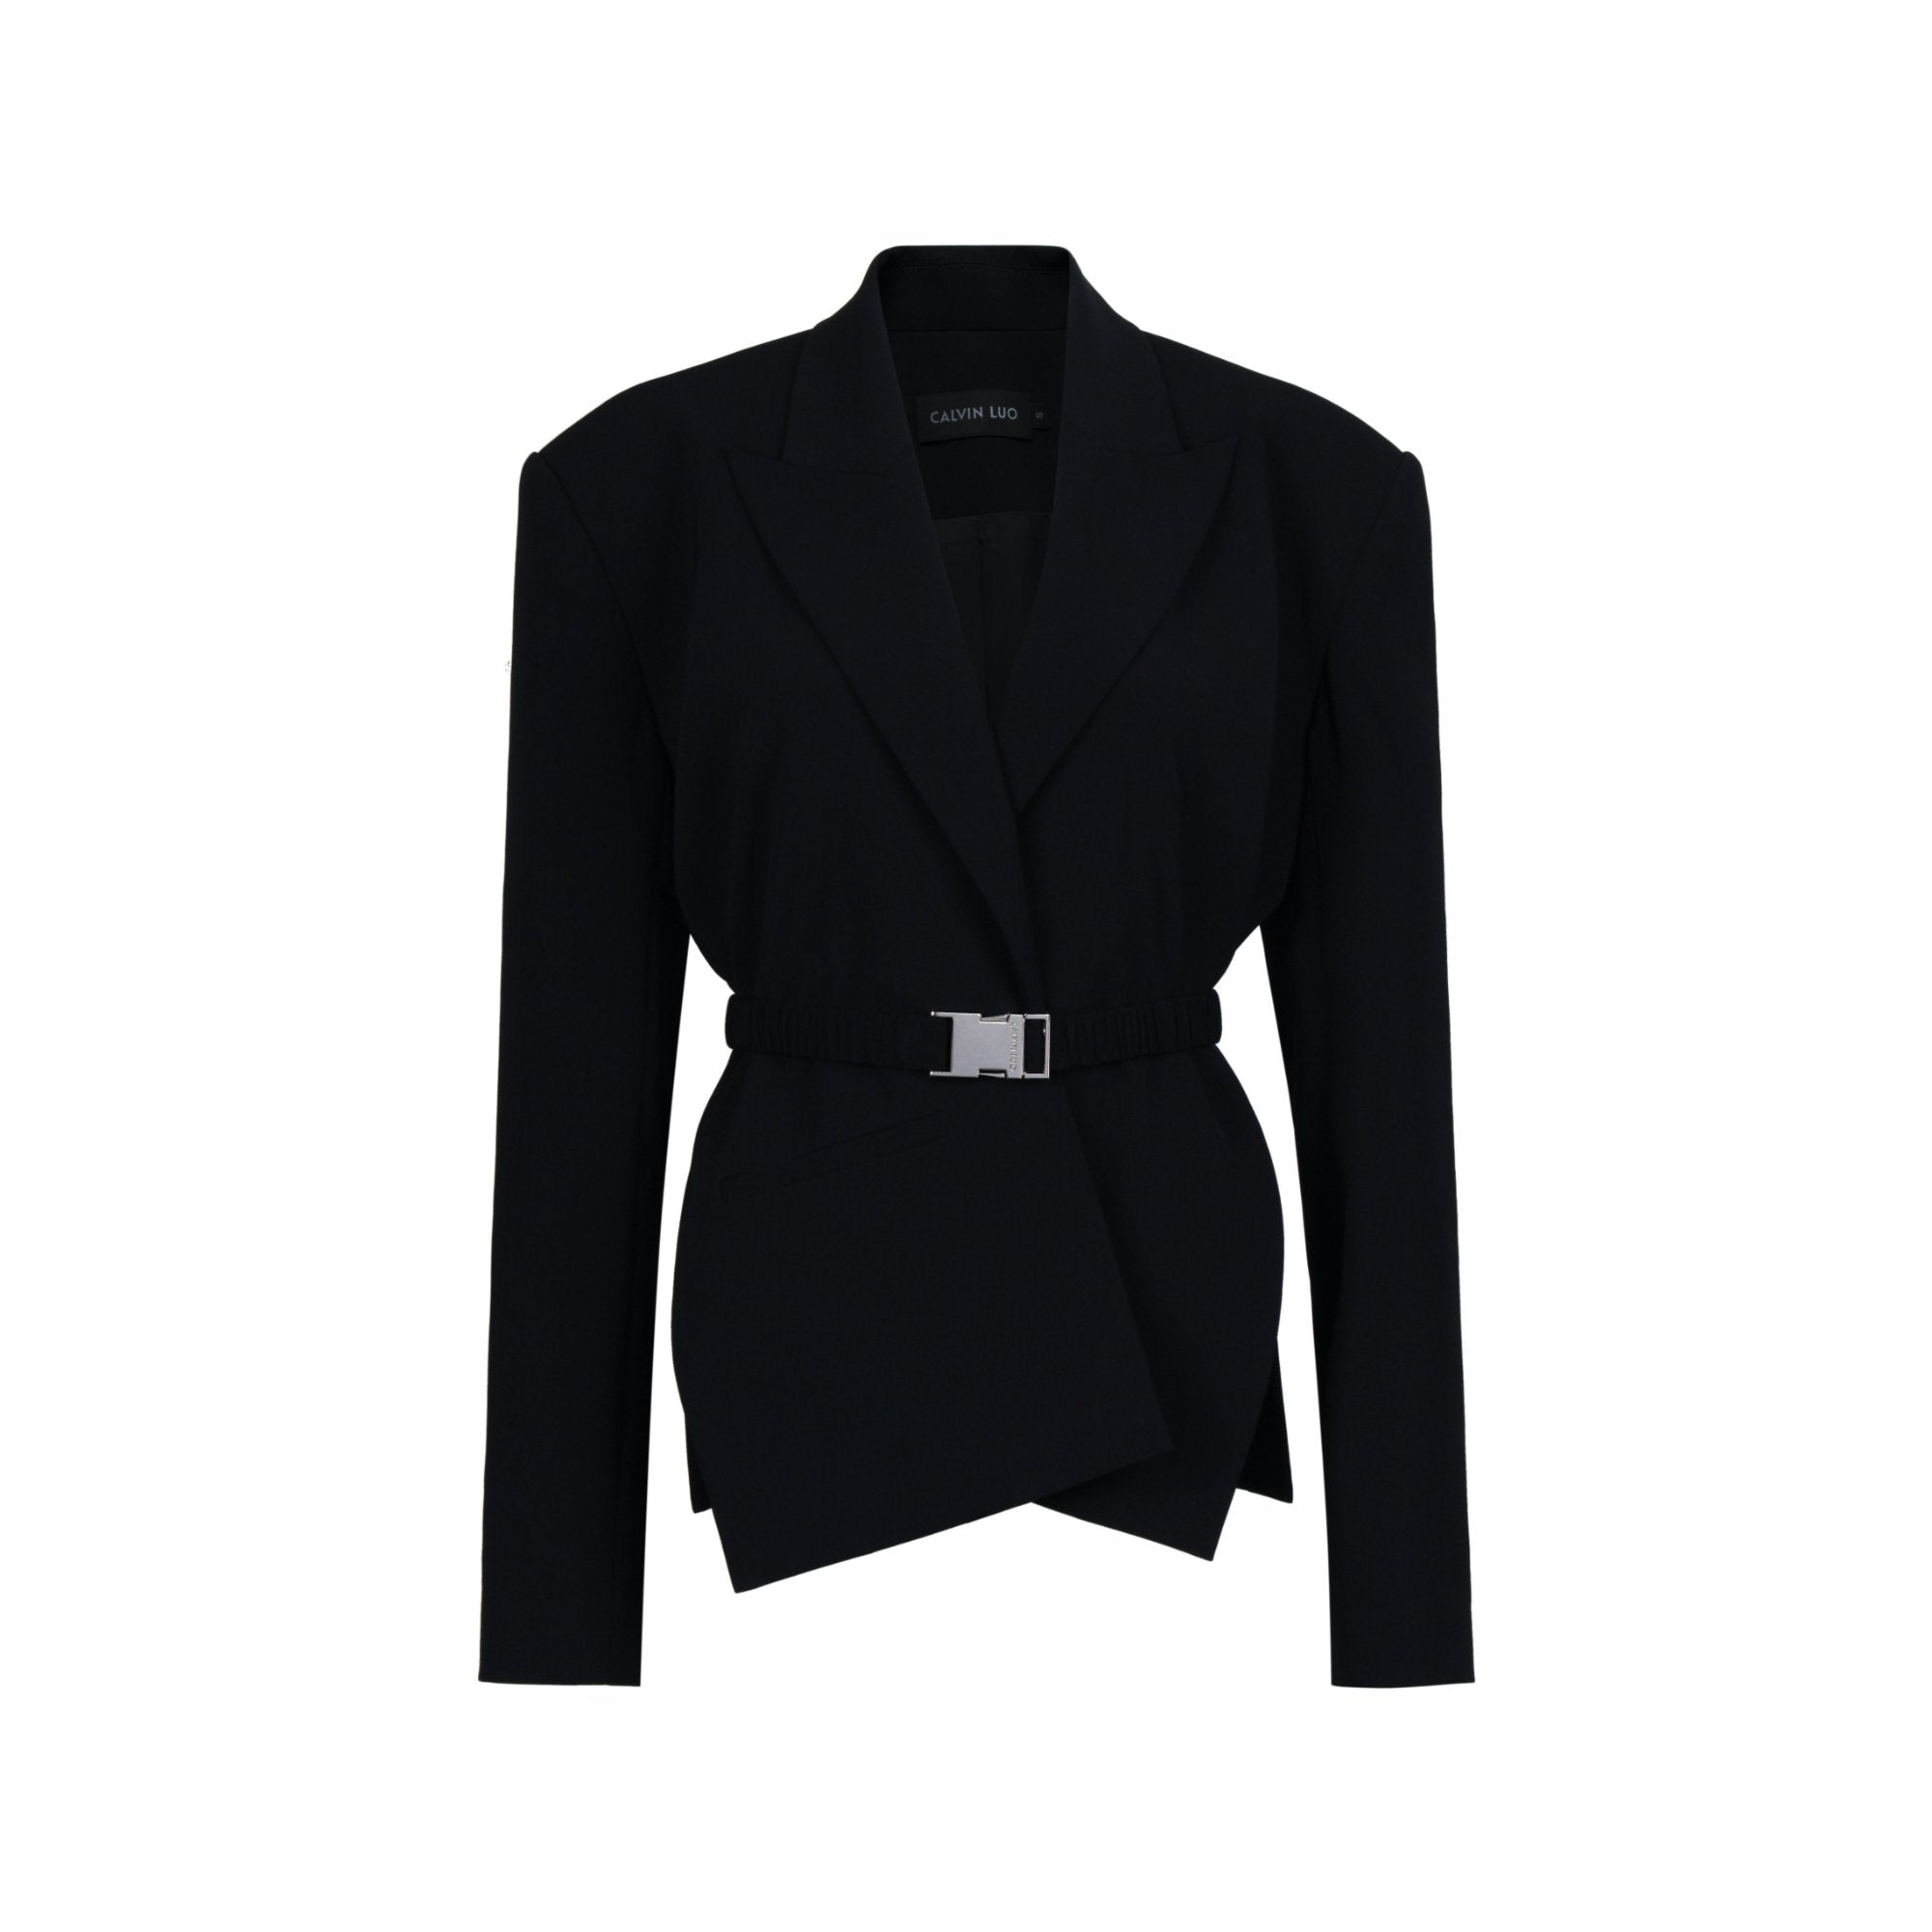 CALVIN LUO Black Cross Placket Jacket | MADA IN CHINA